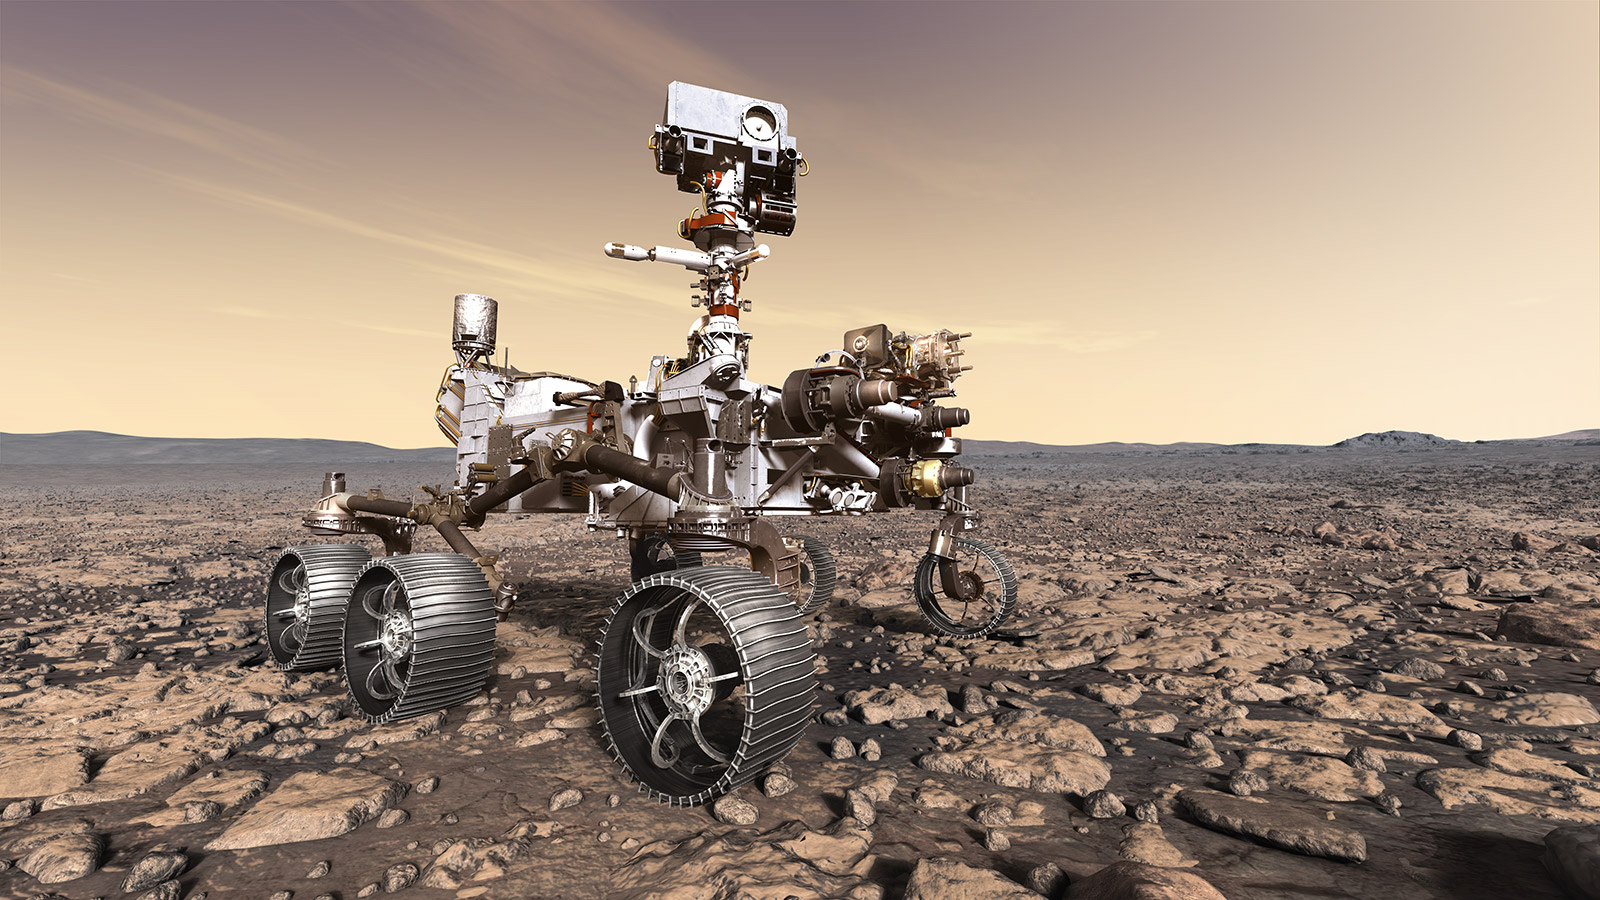 slide 1 - This artist's rendition depicts NASA's Mars 2020 rover studying its surroundings.